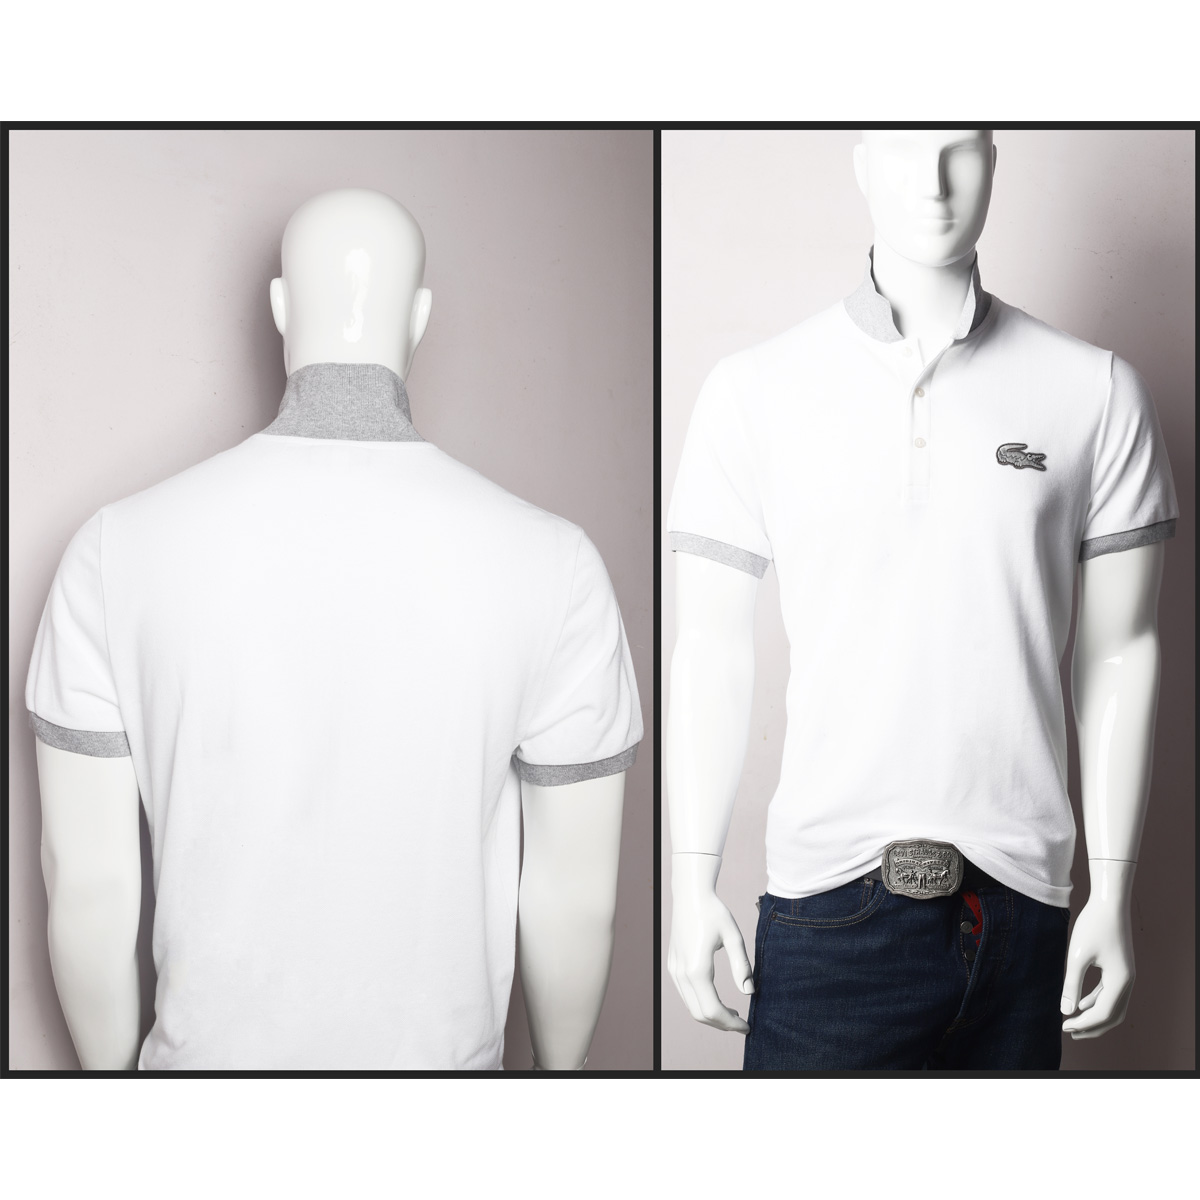 ao-polo-lacoste-regular-fit-162